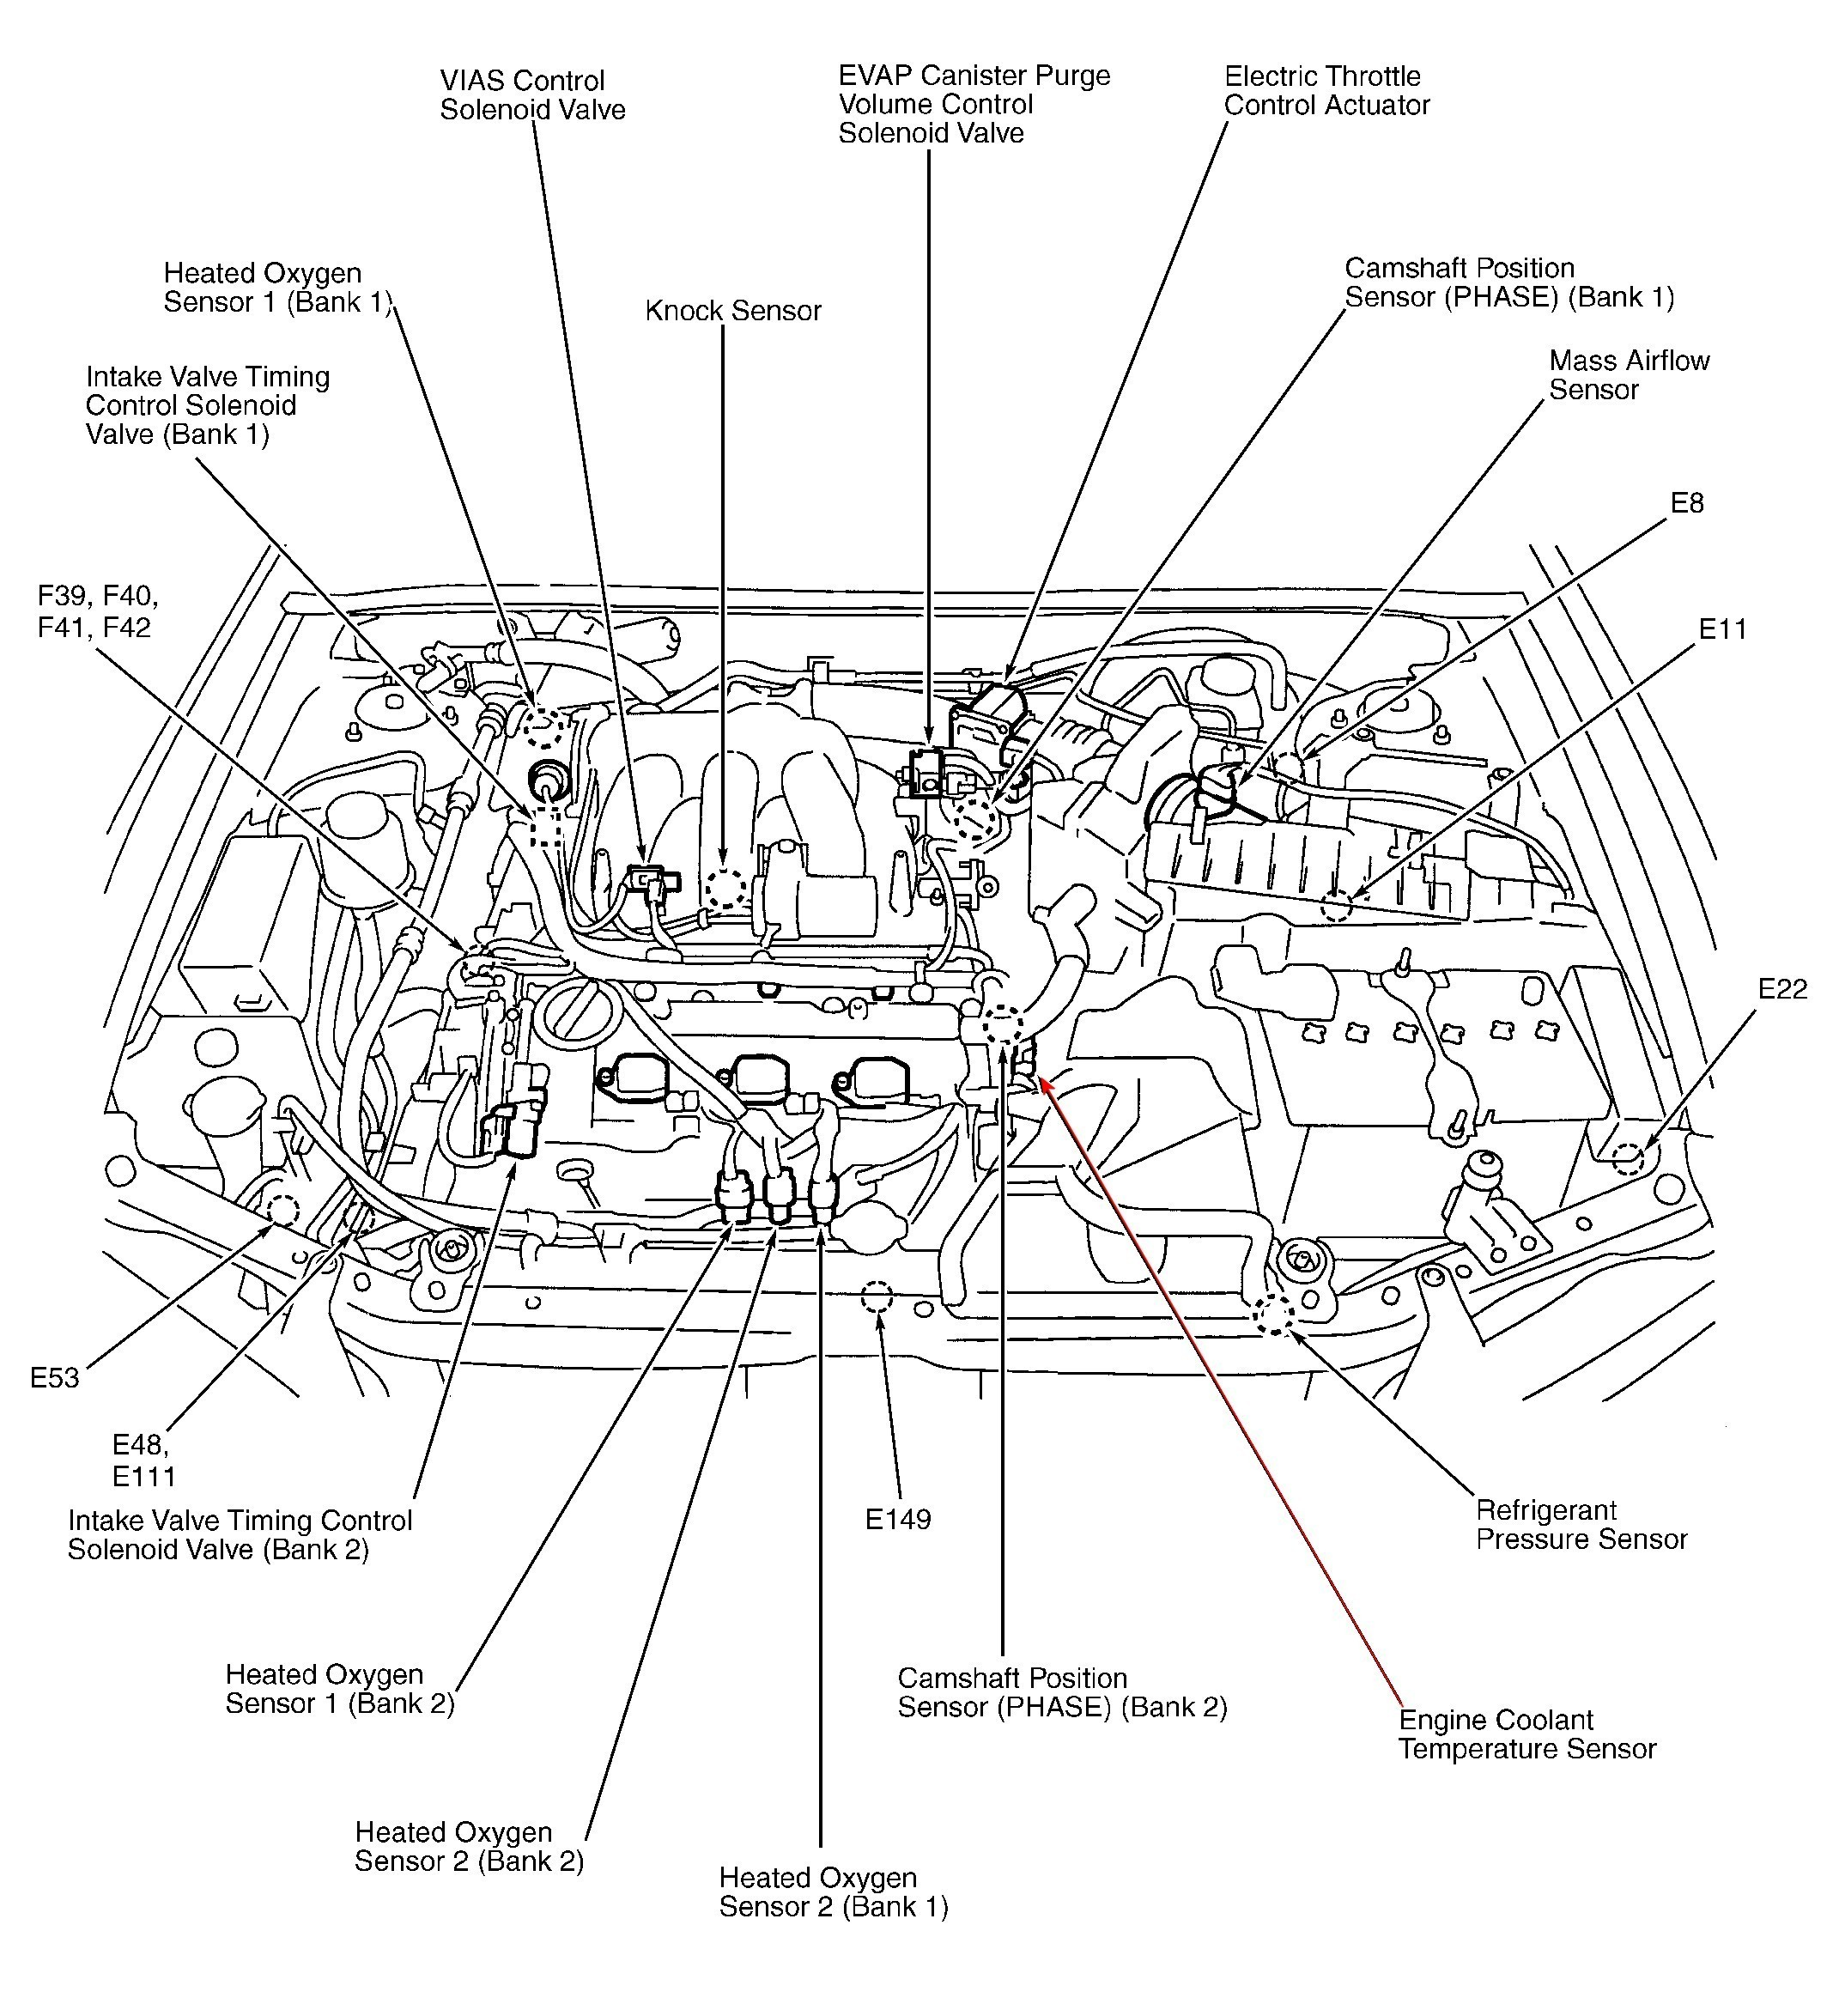 1999 Nissan Sentra Engine Diagram - Wiring DDiagrams Home wait-analyst -  wait-analyst.brixiaproart.it | 1998 Nissan Sentra Engine Diagram |  | Brixia PRO Art